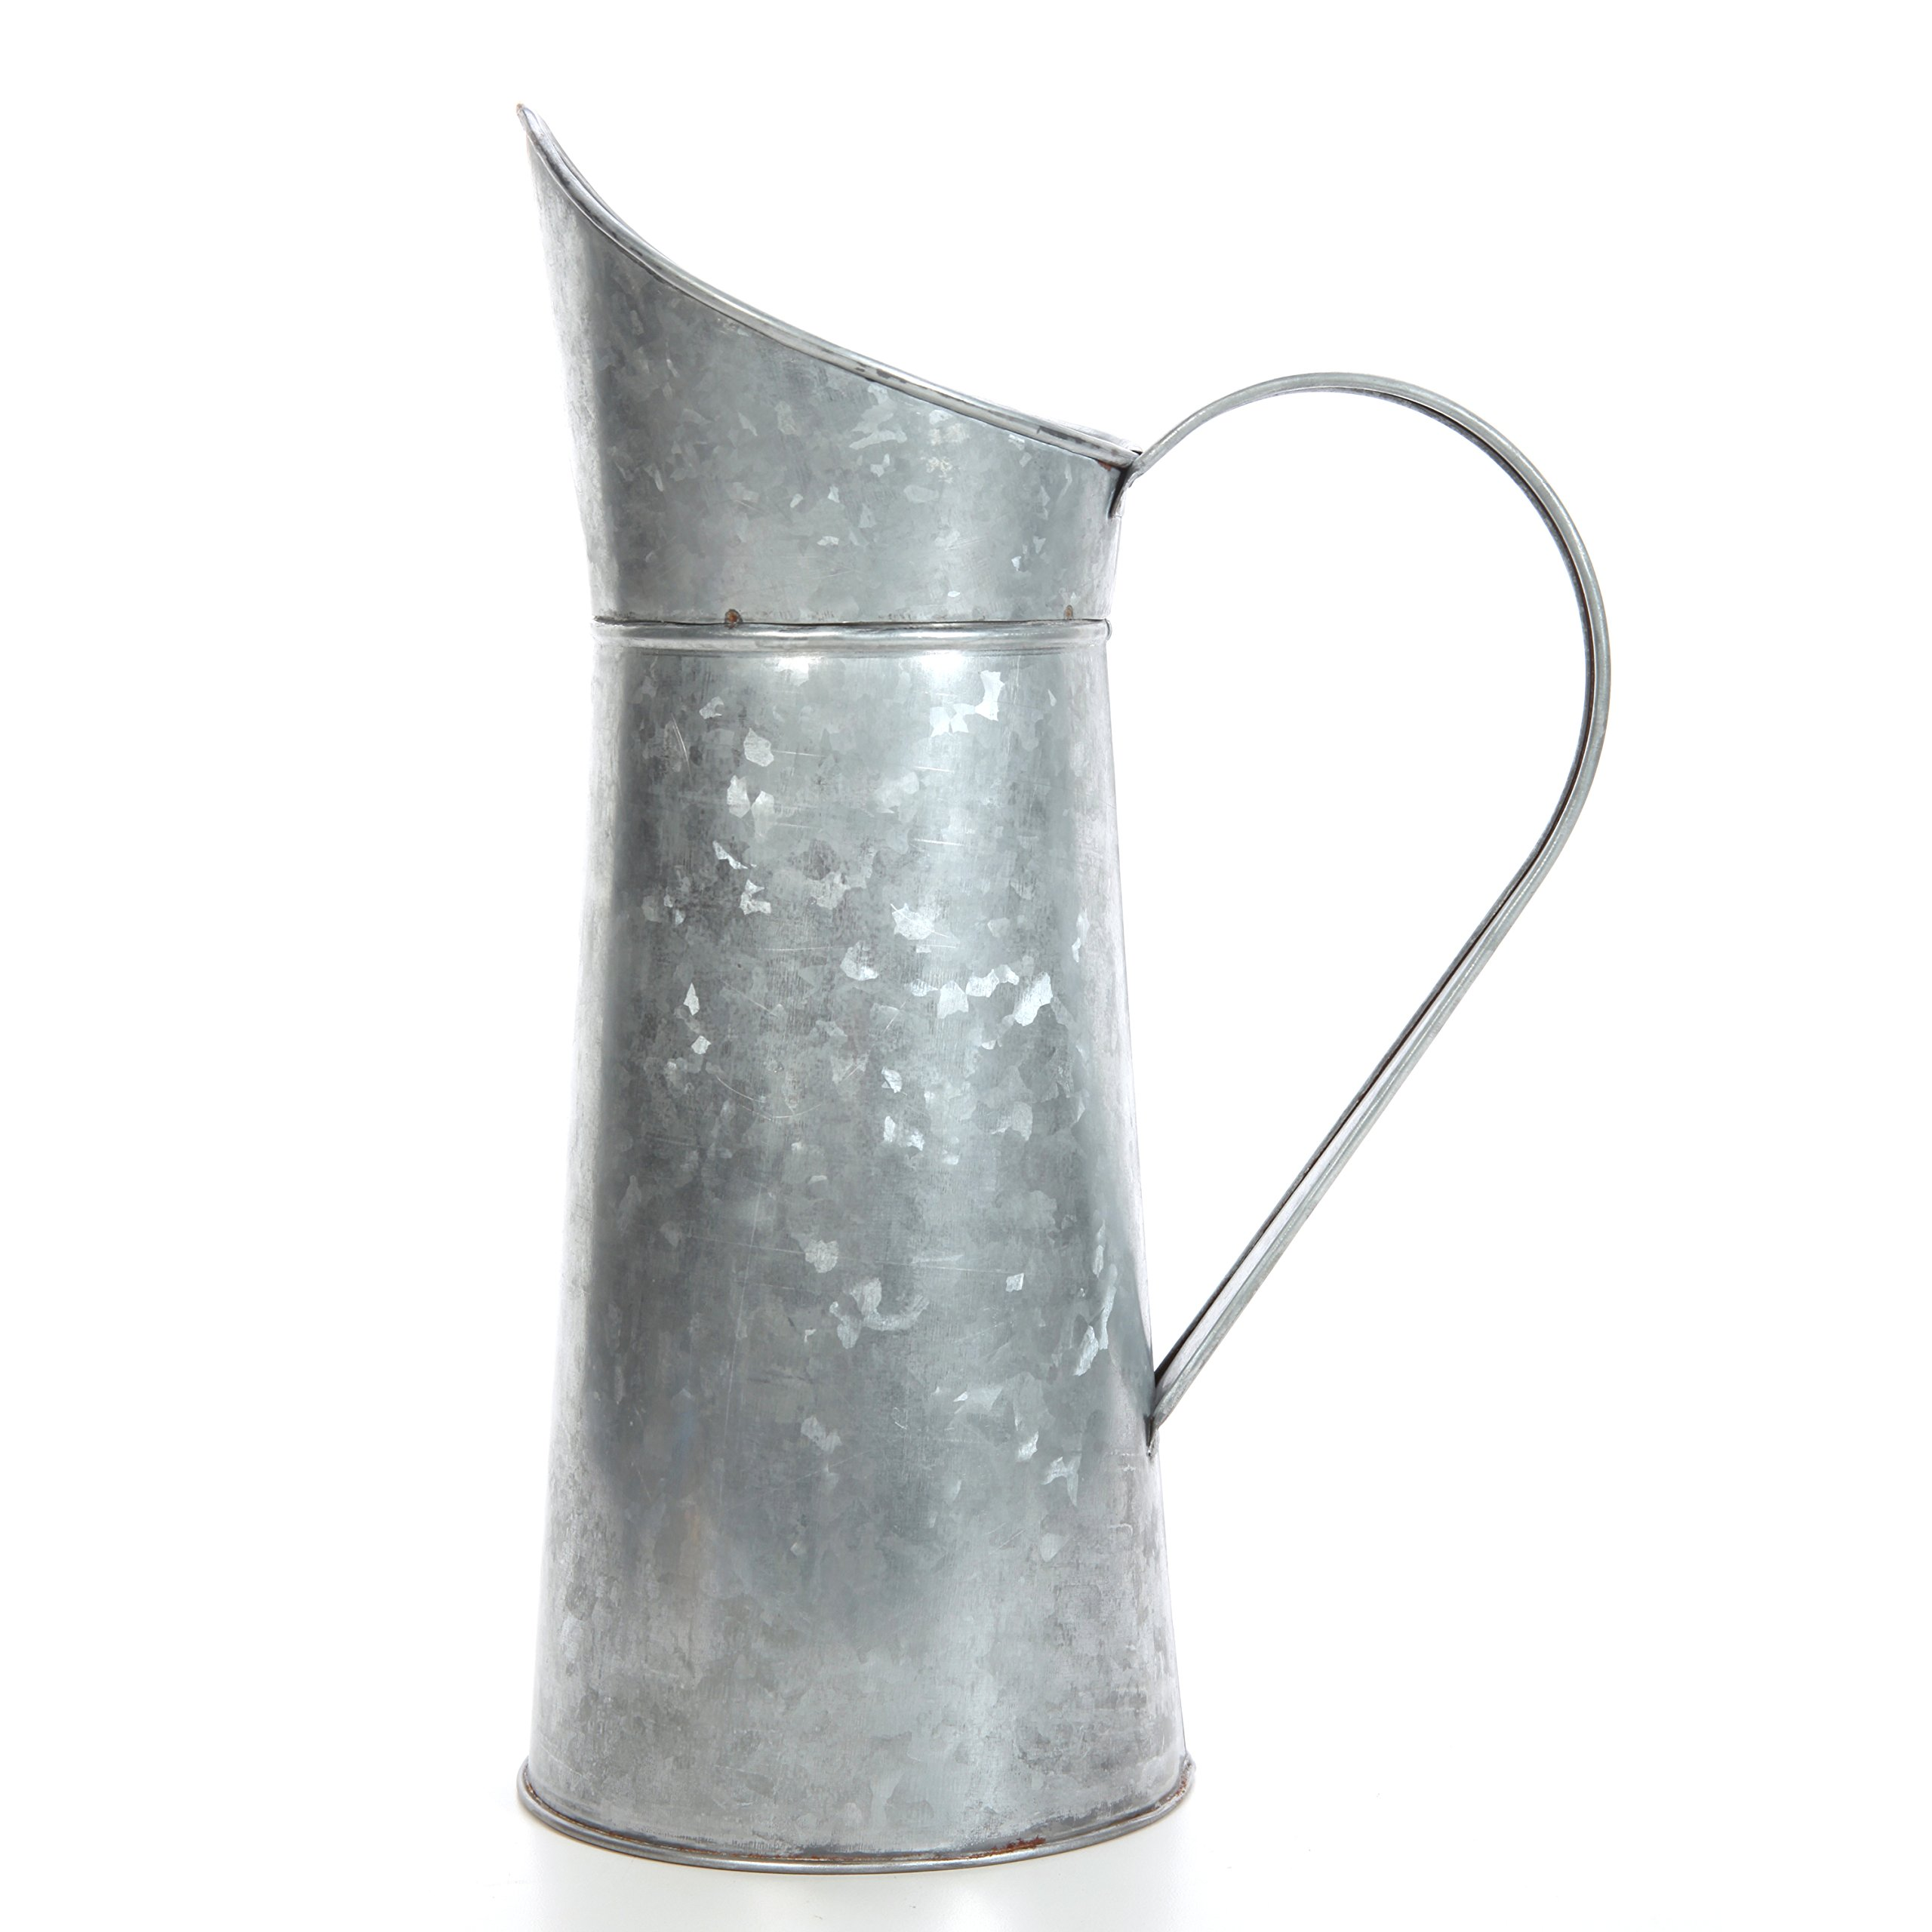 Hosley Galvanized Pitcher - 14'' High, Decorative Use, Ideal Gift for Weddings, Spa, Flower Arrangements O3